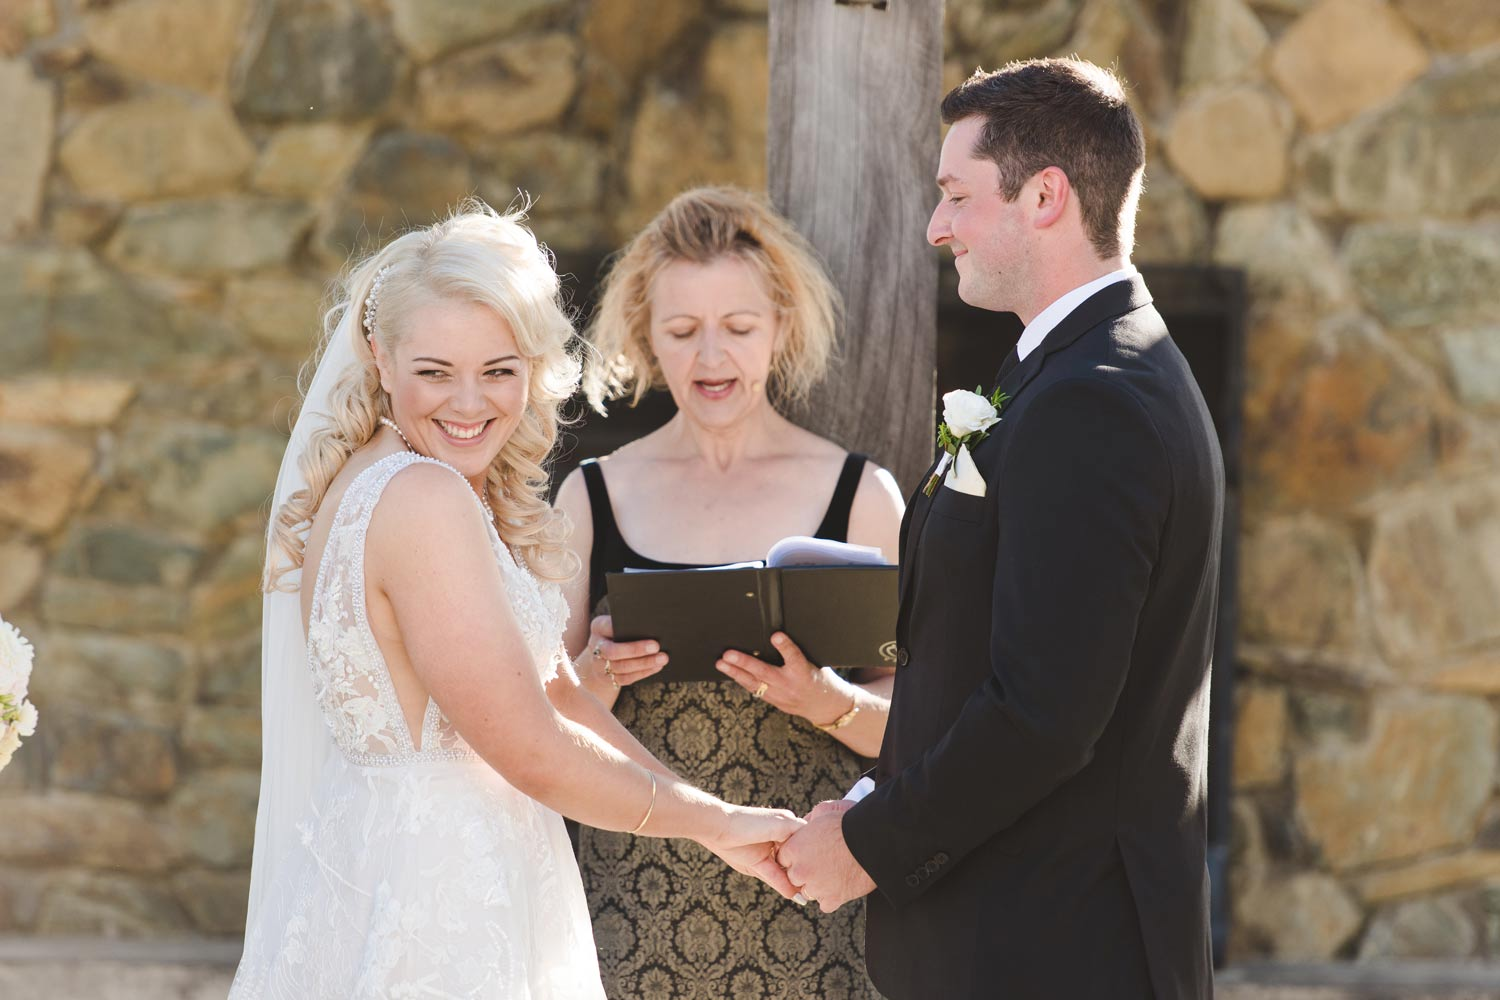 Josie and Heath wished for a relaxed ceremony with a splash of humor!!